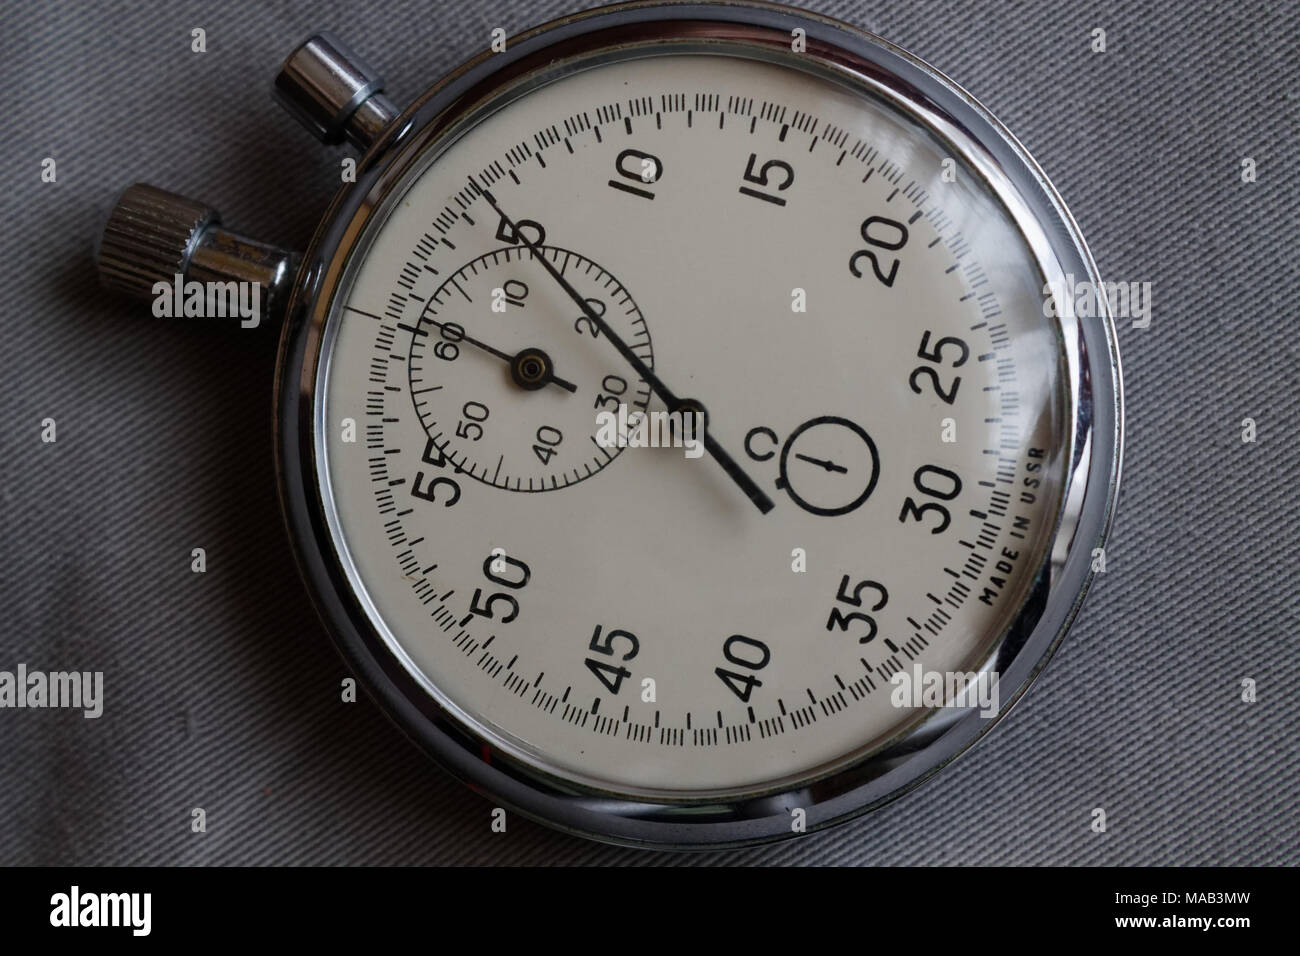 stopwatch on white denim background value measure time old clock